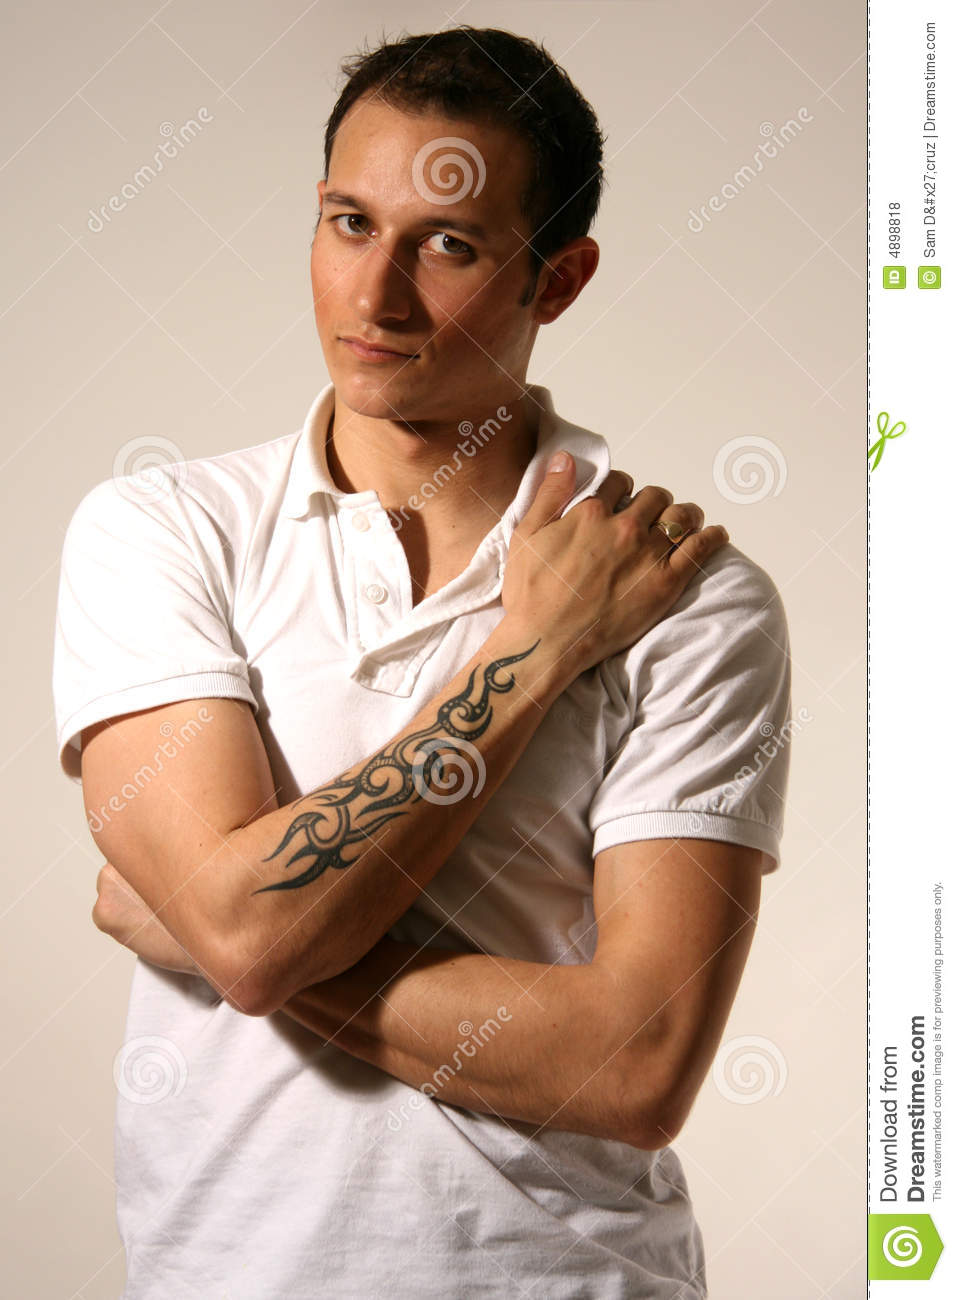 Good Looking Young Man In Studio Royalty Free Stock Photos ...  Good Looking Young Man